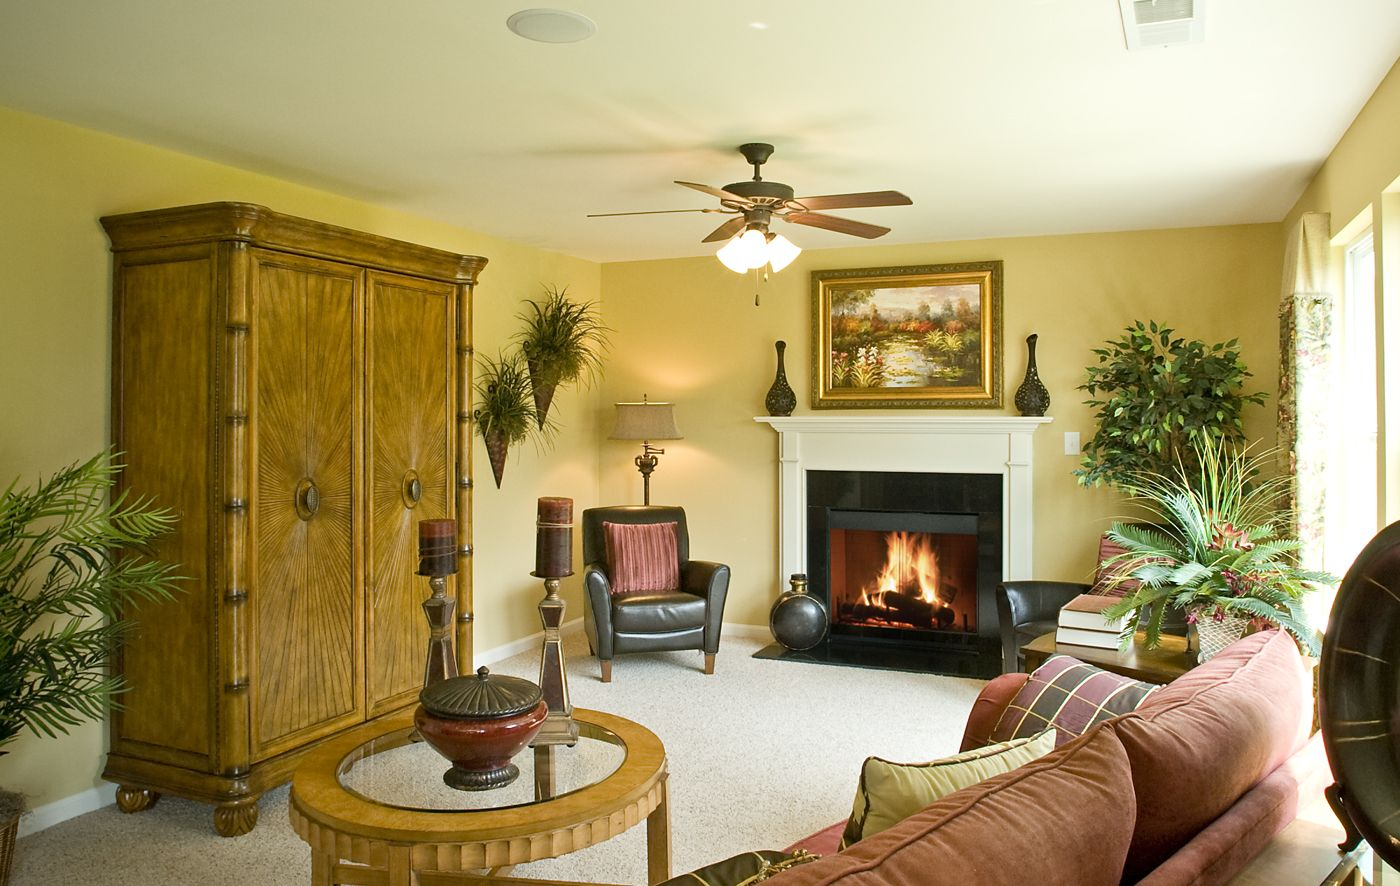 Model Home Interior Decorating Amazing With Images Of Model Home